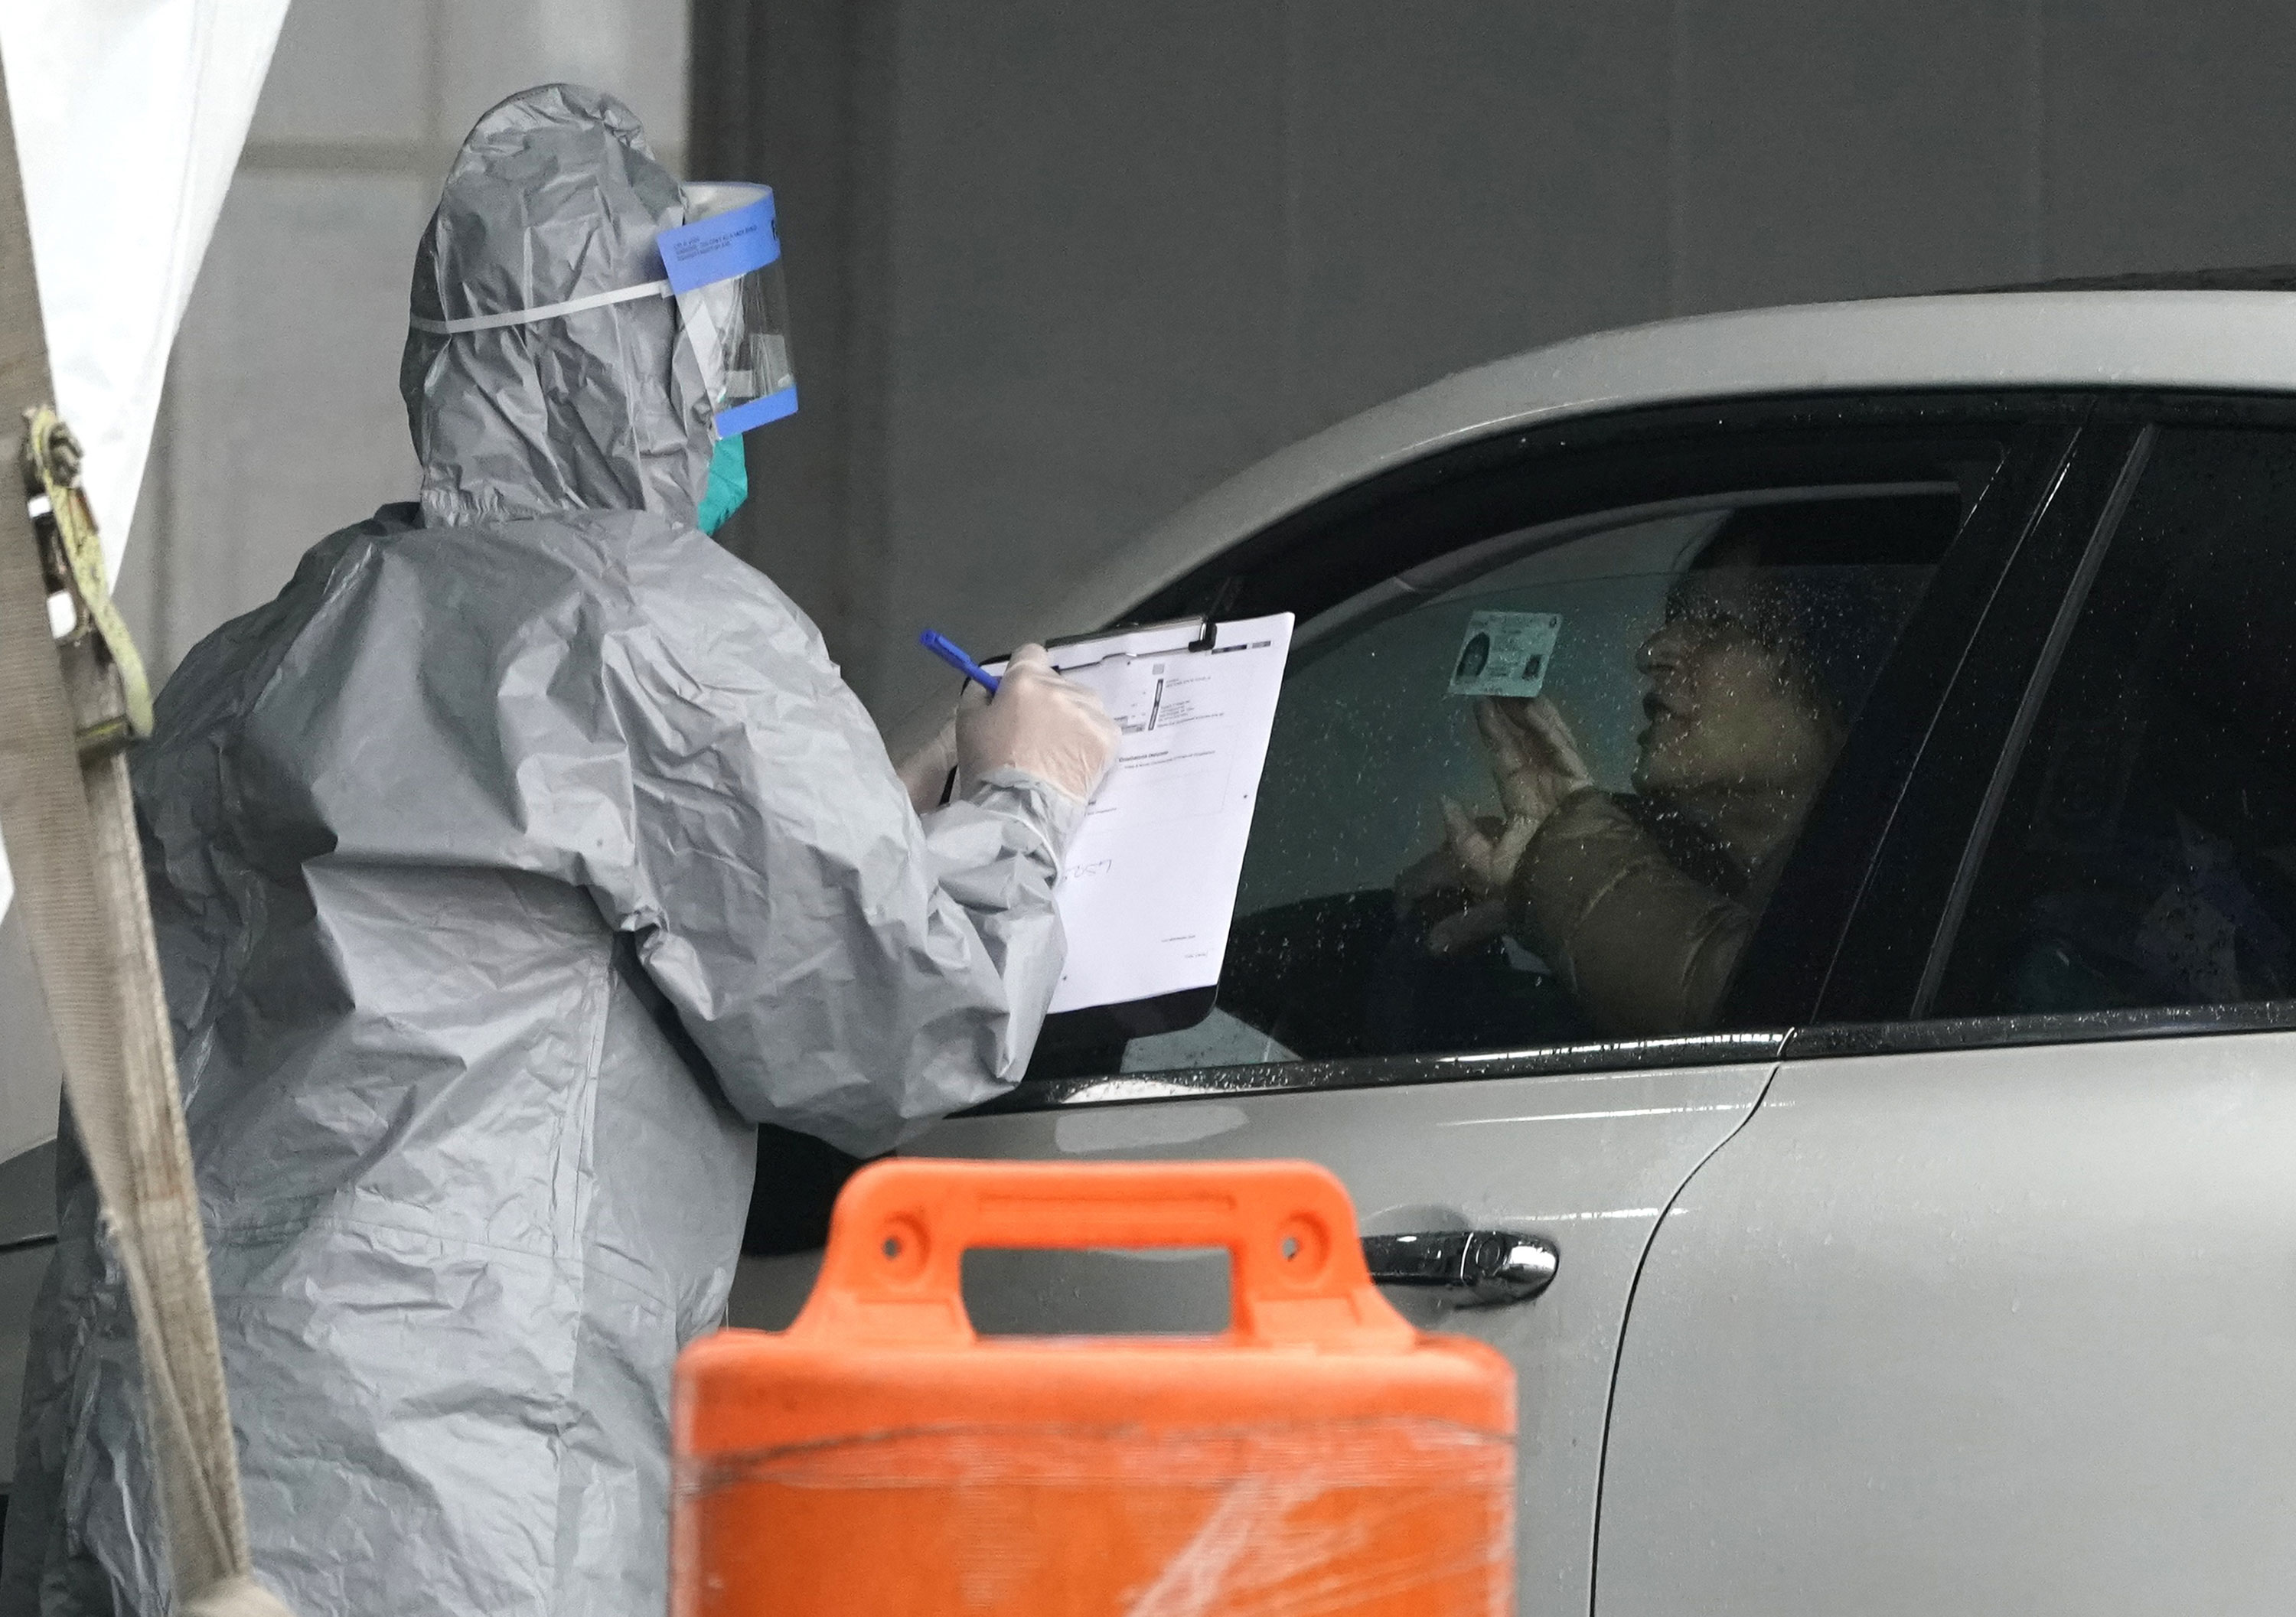 A worker in protective suits checks the identification of a patient as people arrive by car to be tested for Coronavirus at the state's first drive-through testing center in New Rochelle, New York,on March 13.